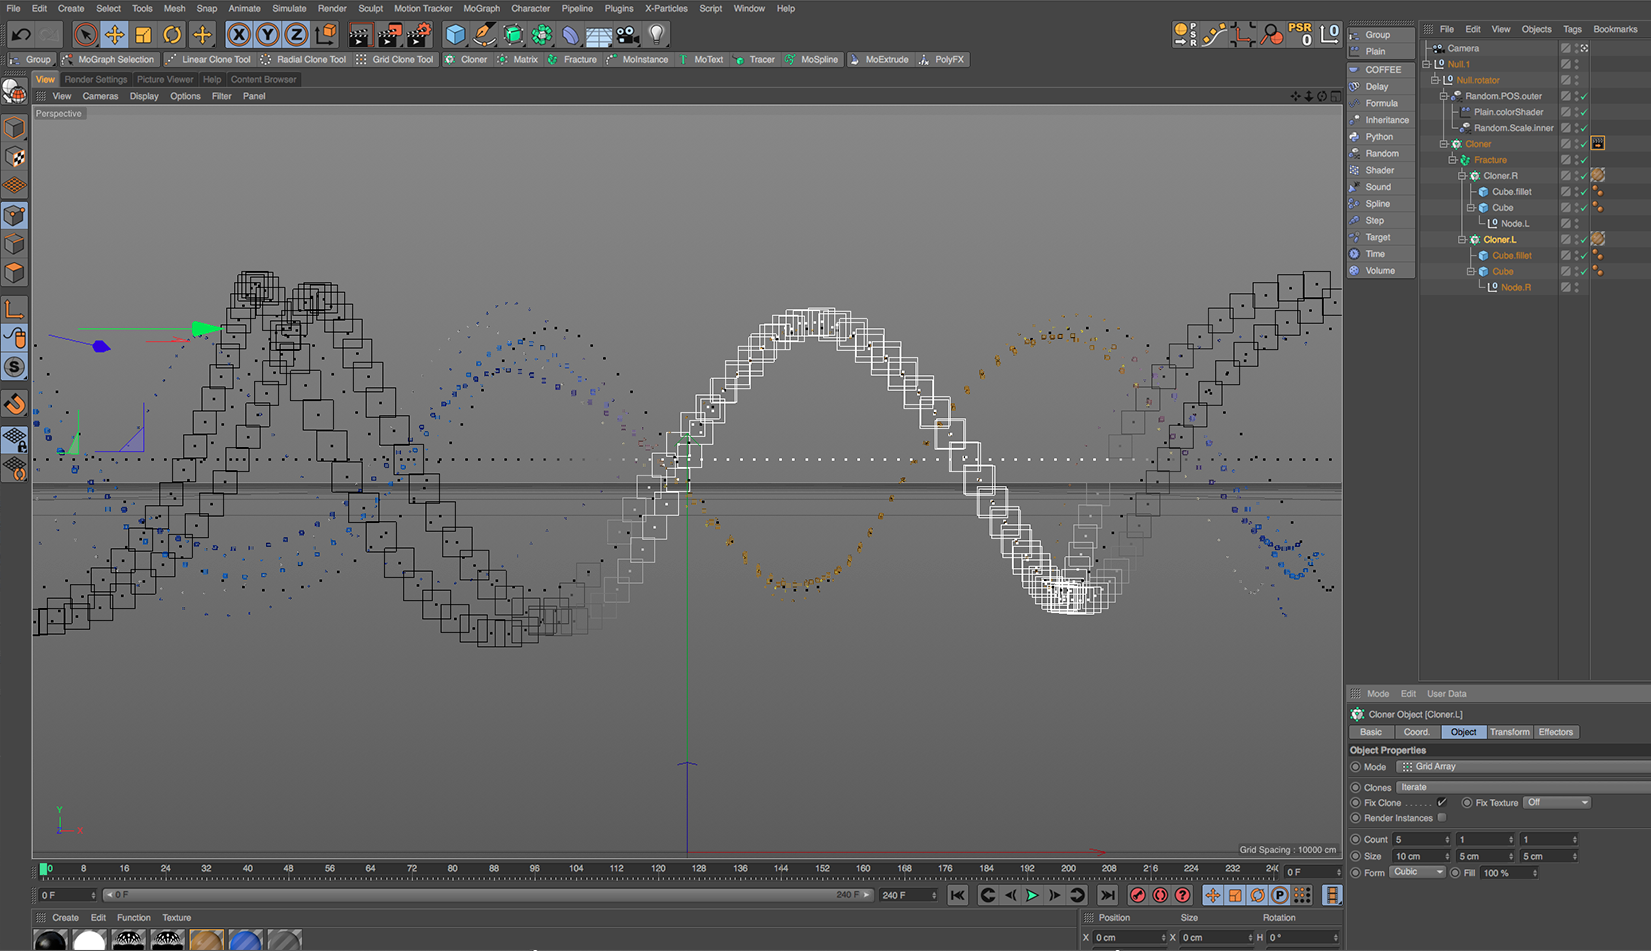 dna-working_0001_dna-wip-2.png